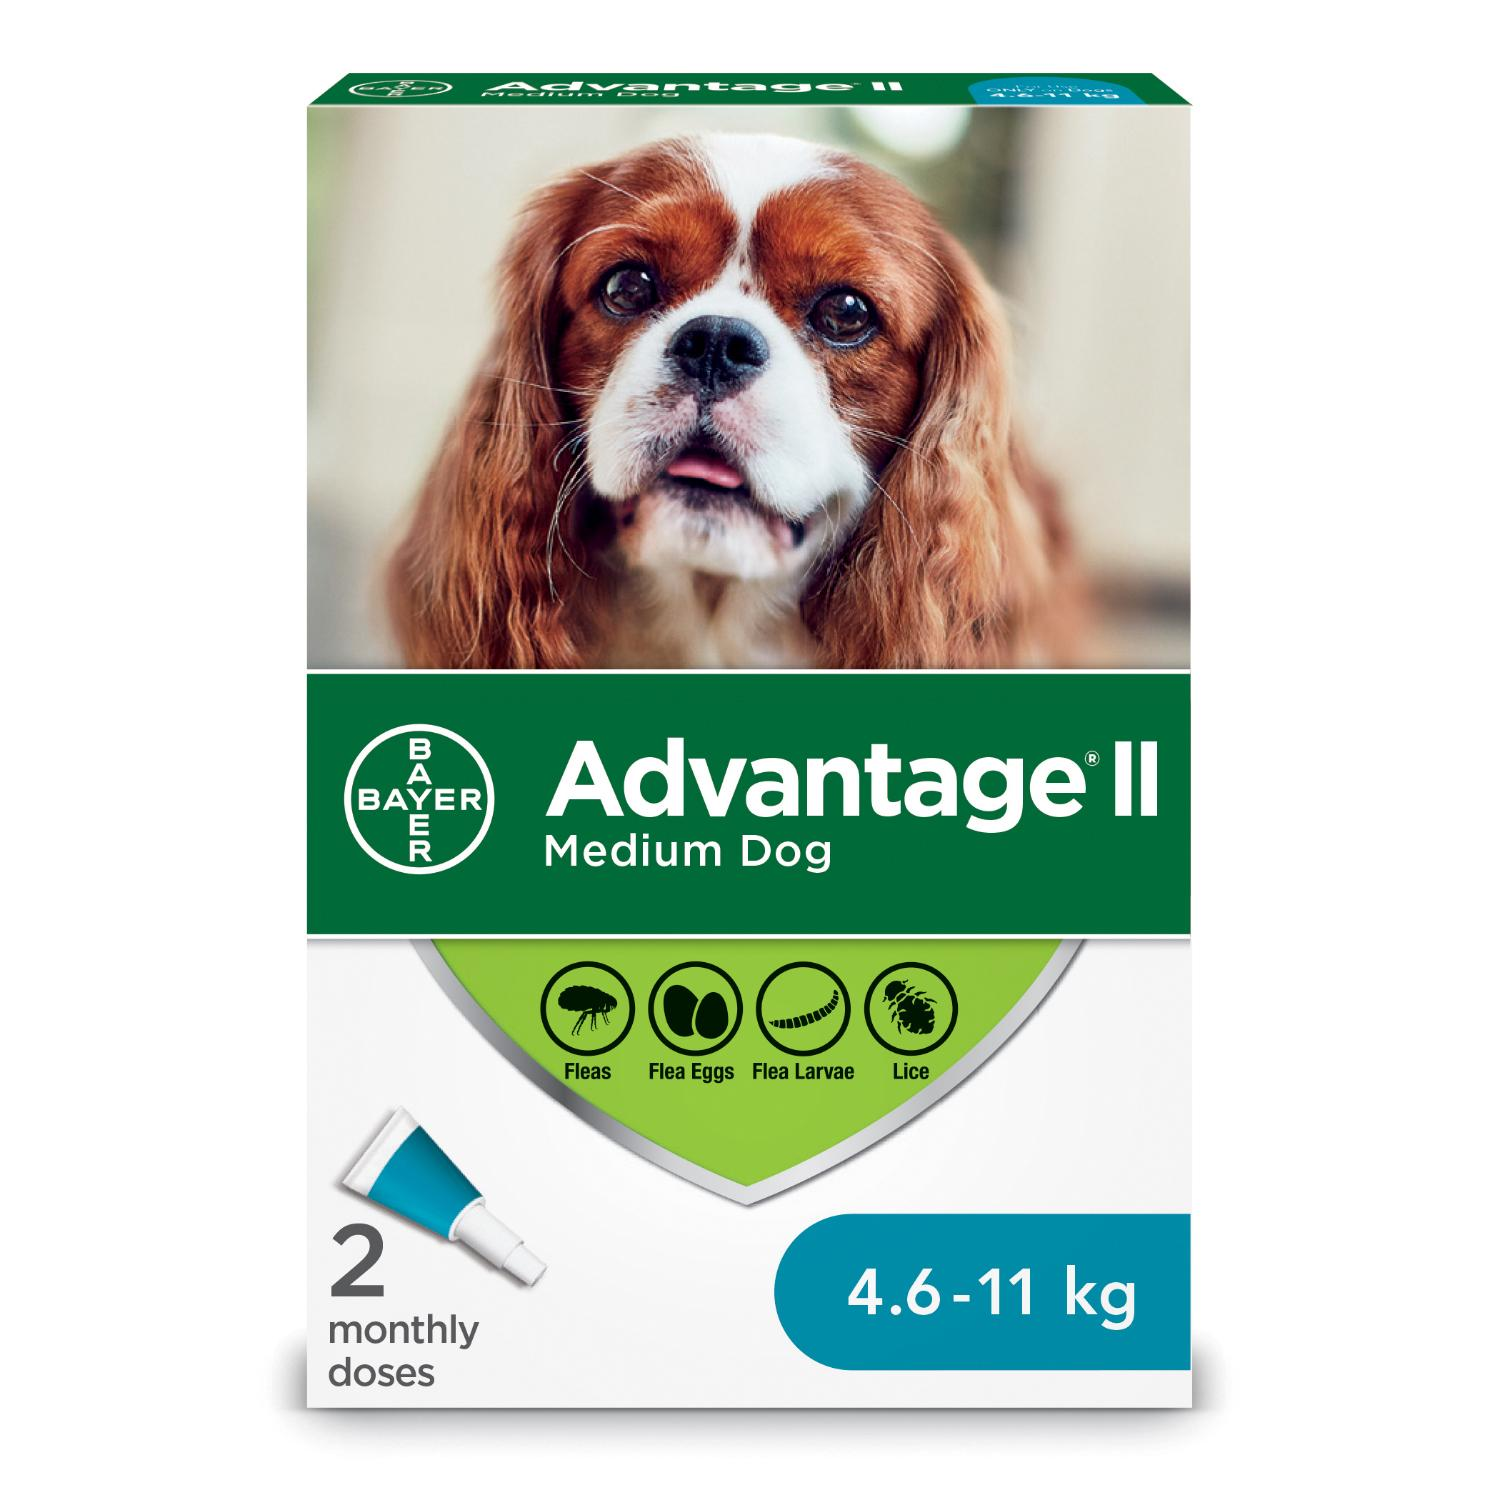 Bayer Advantage II Flea Protection for Medium Dogs 4.6-11-kg Image